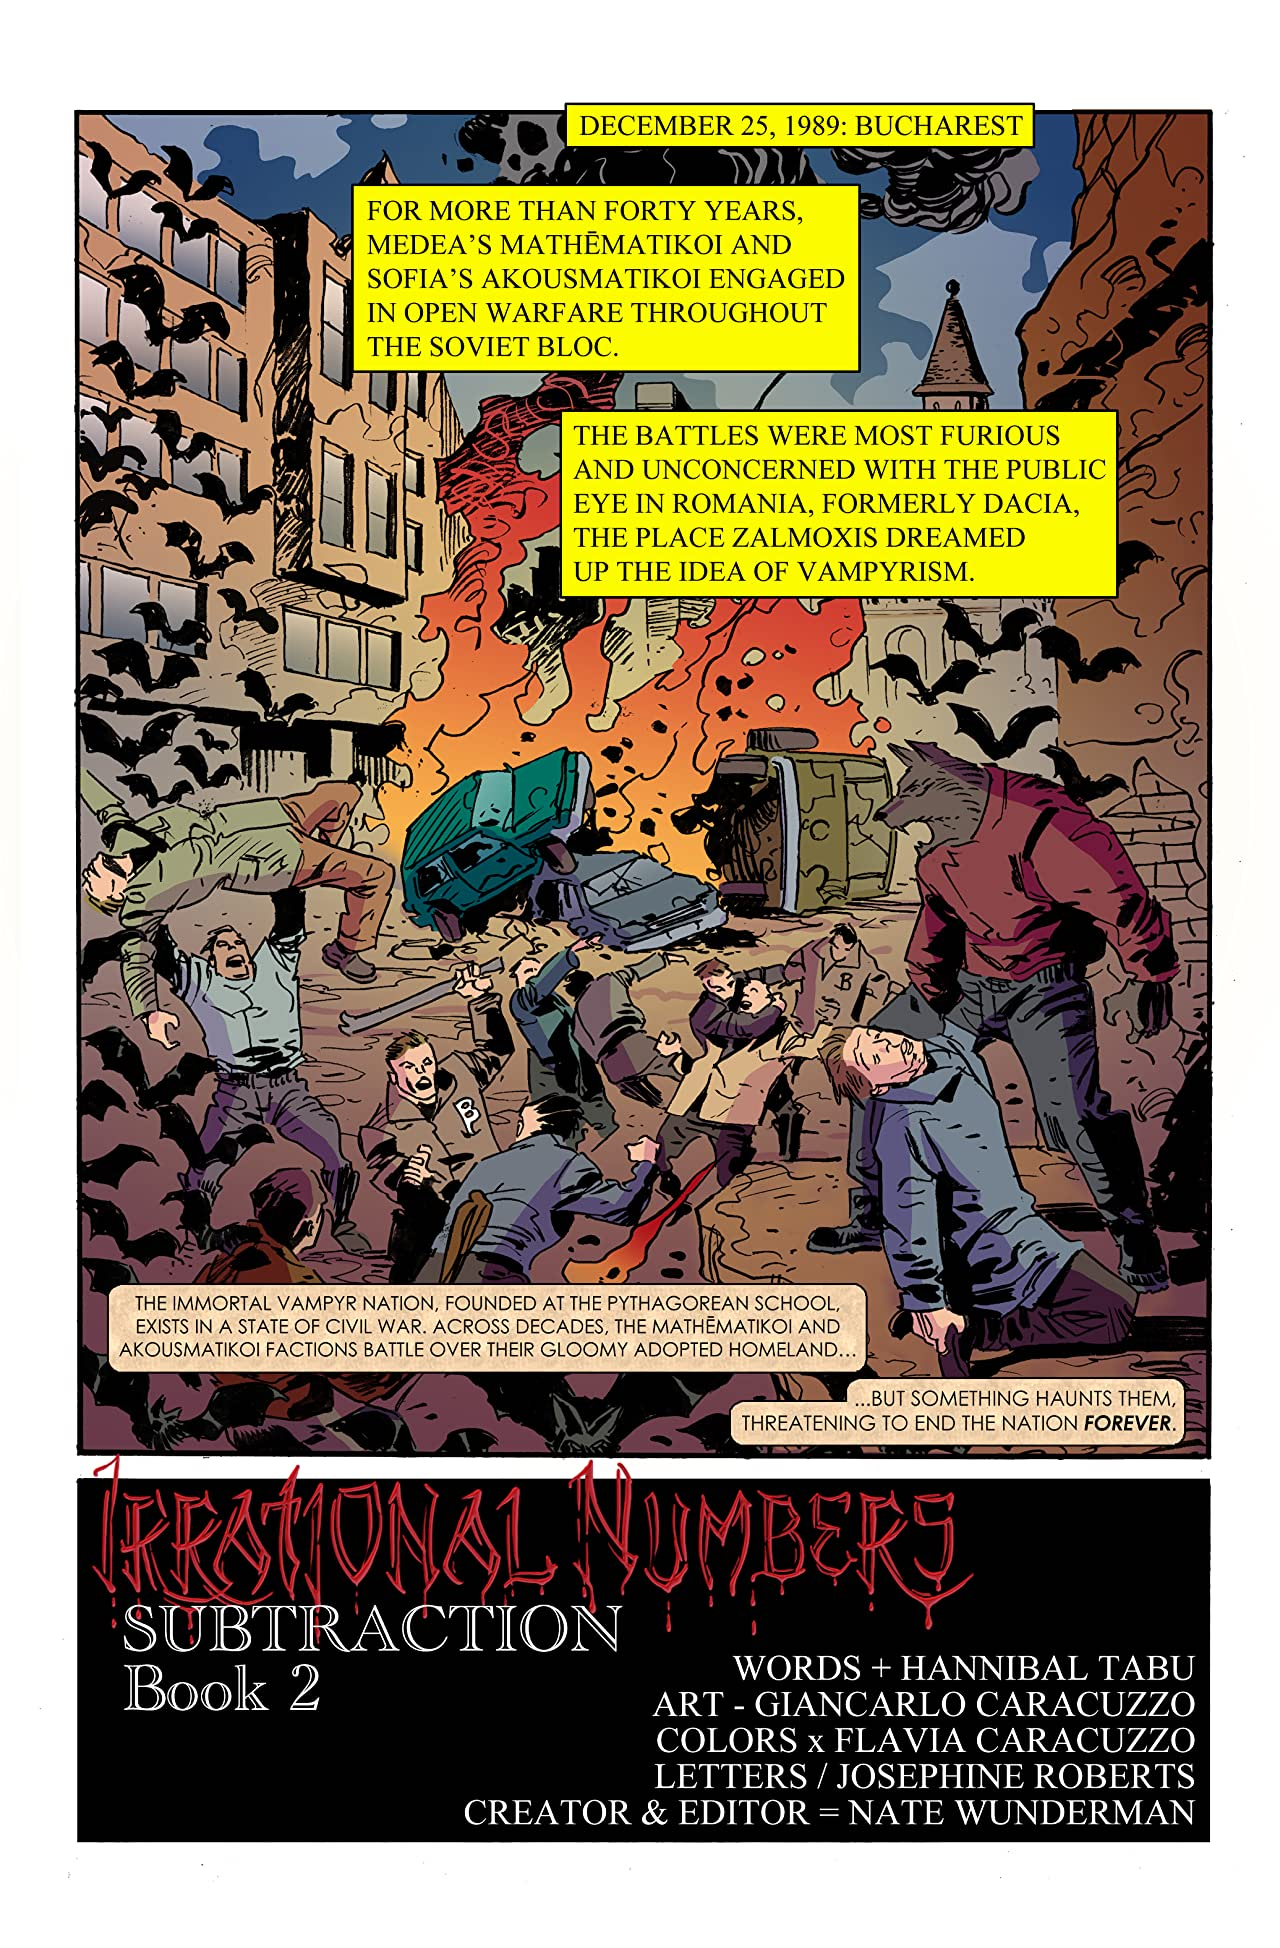 Irrational Numbers #2